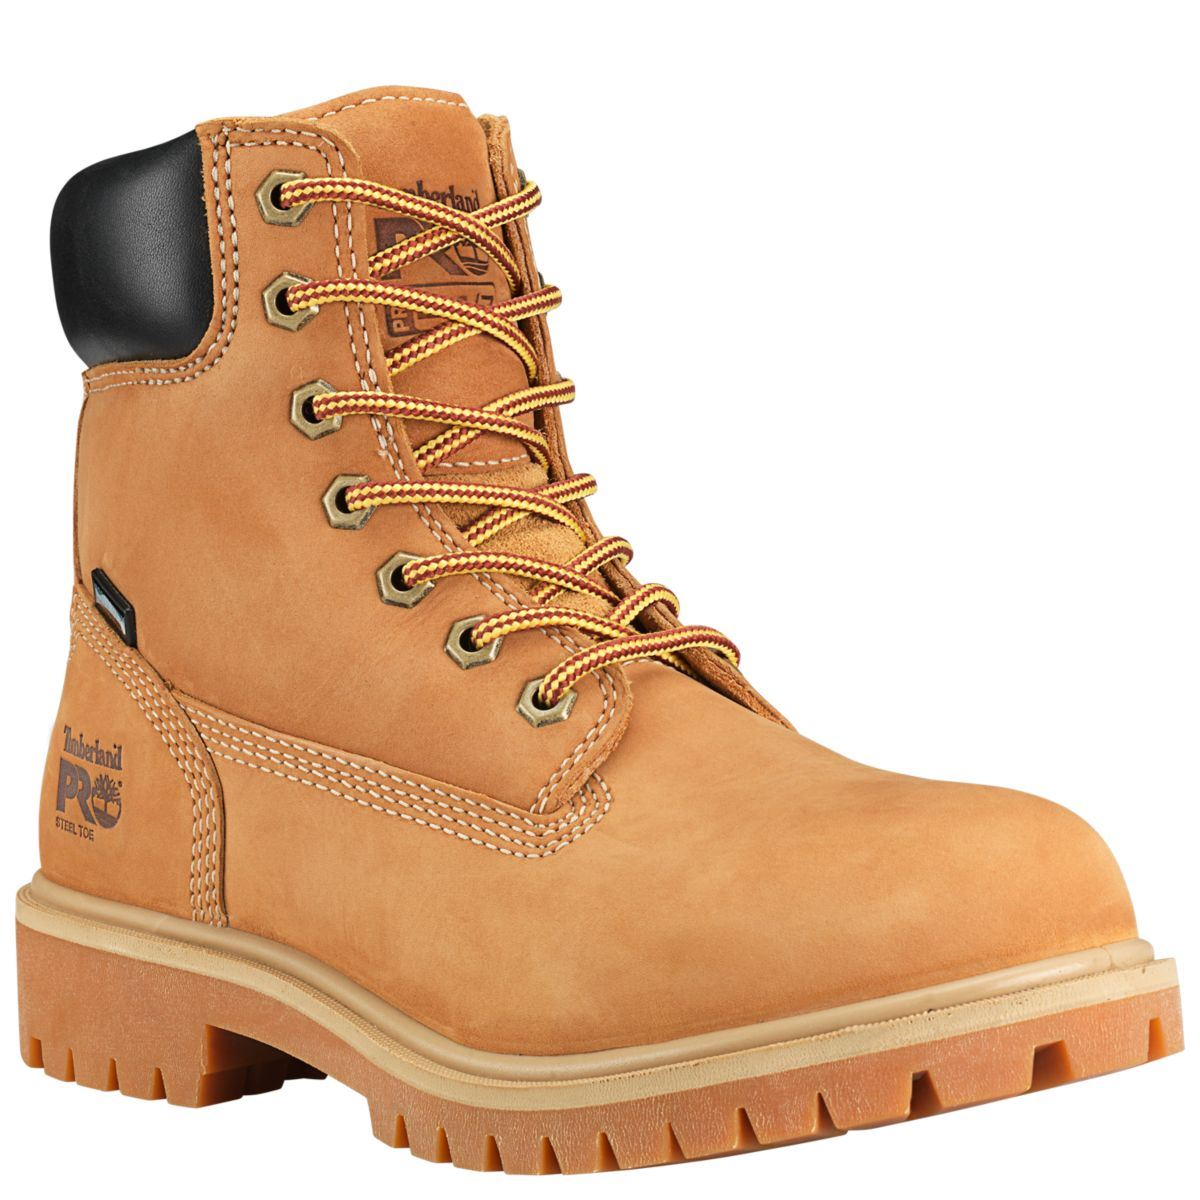 Timberland-PRO-Boot-Womens-Direct-Attach-6-034-Waterproof-Insulate-Steel-Toe-A1KJ8